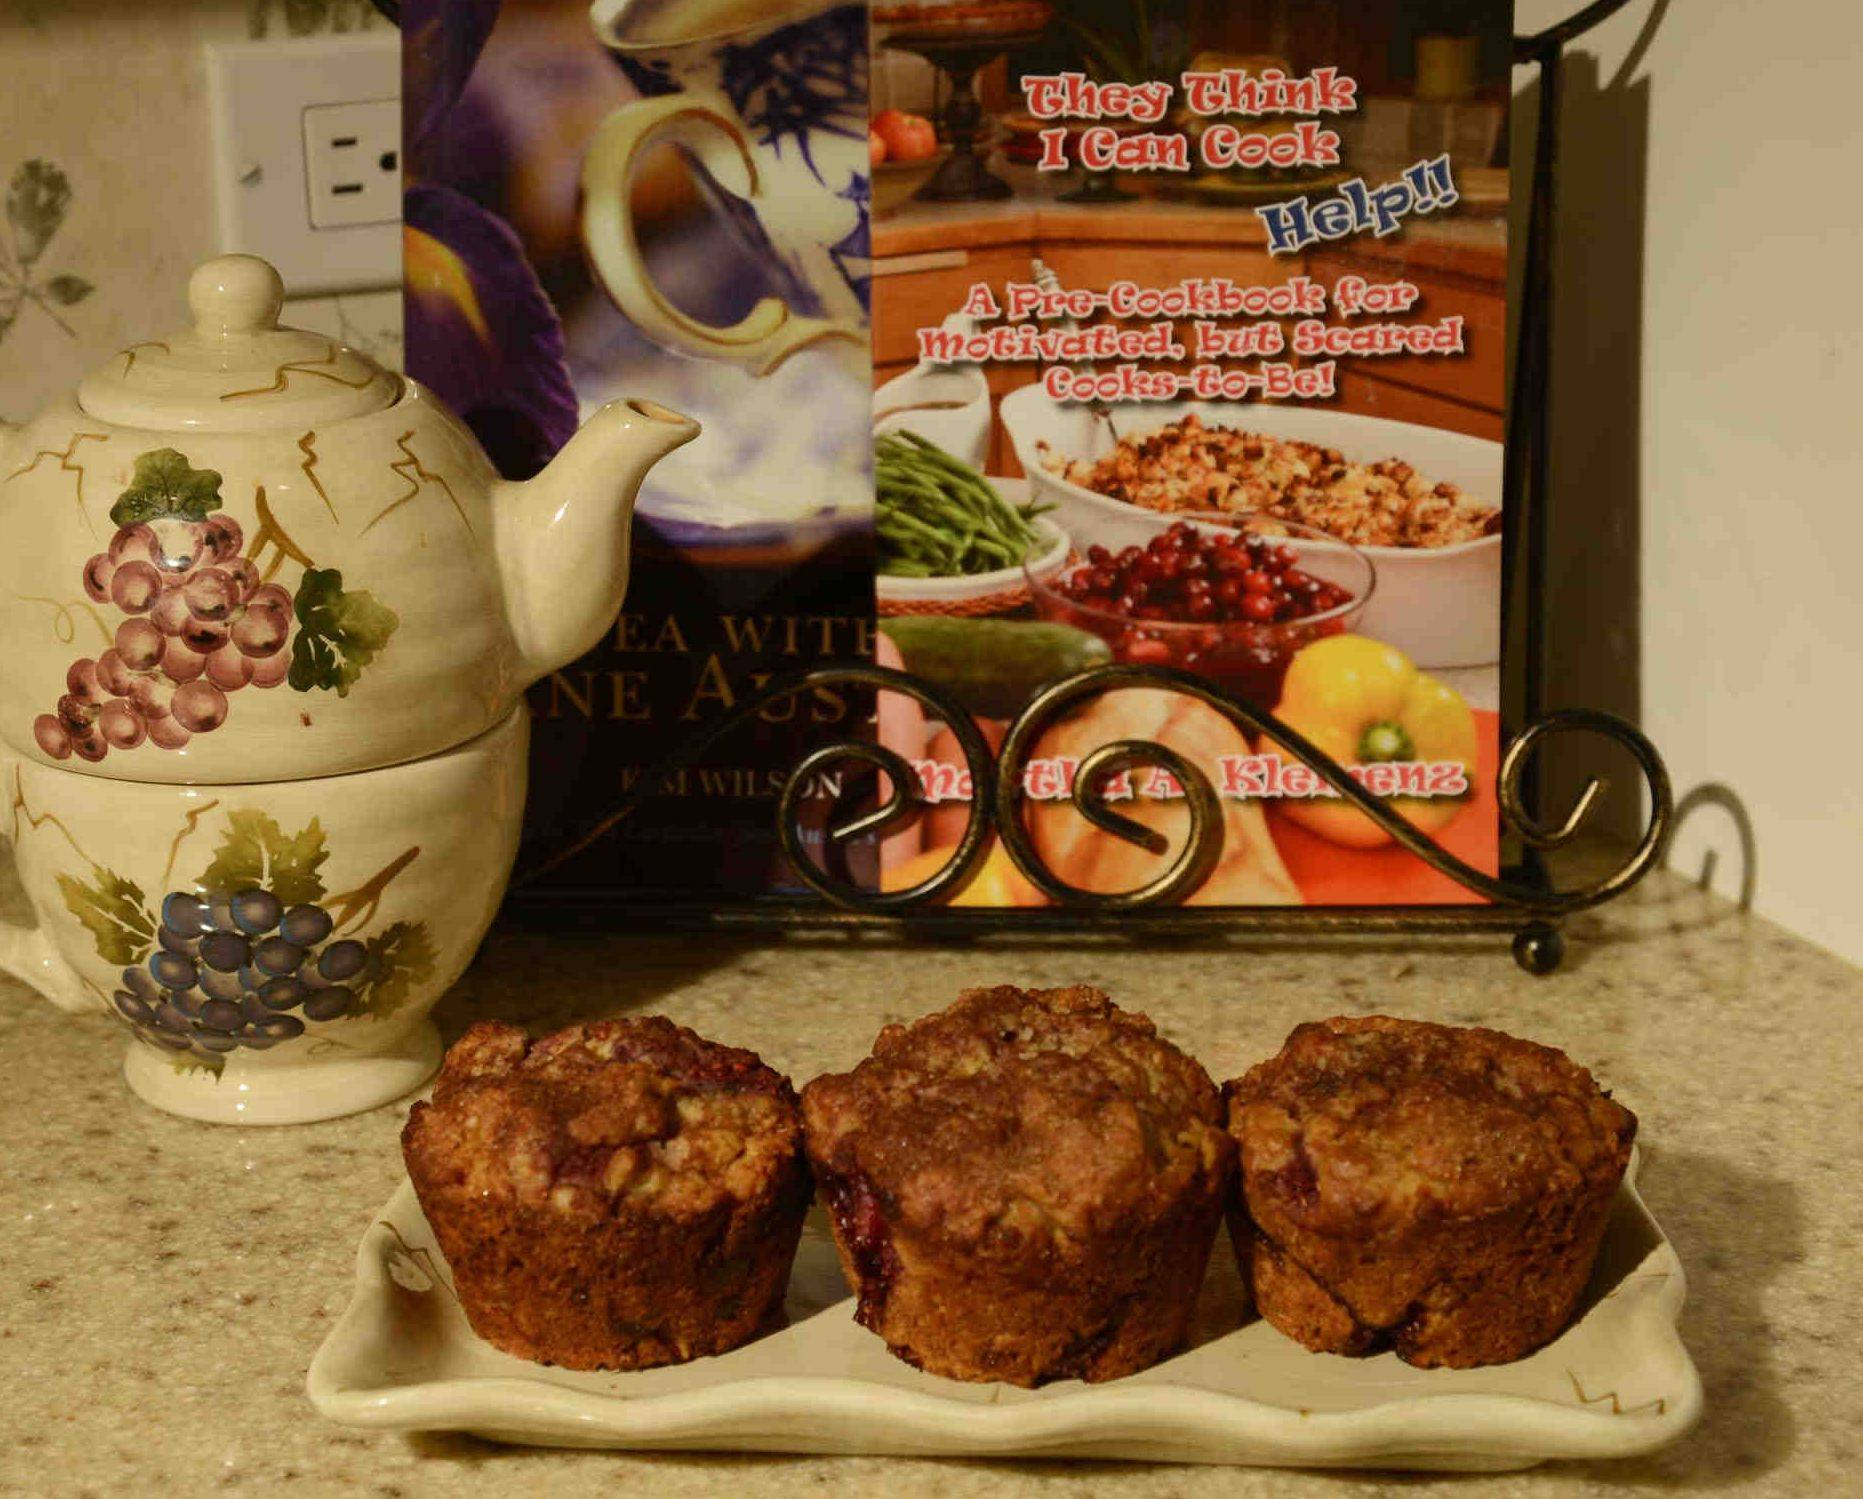 Martha Klemenz stirs bran cereal, wheat germ, oat bran and fresh raspberries into her hearty morning muffins.